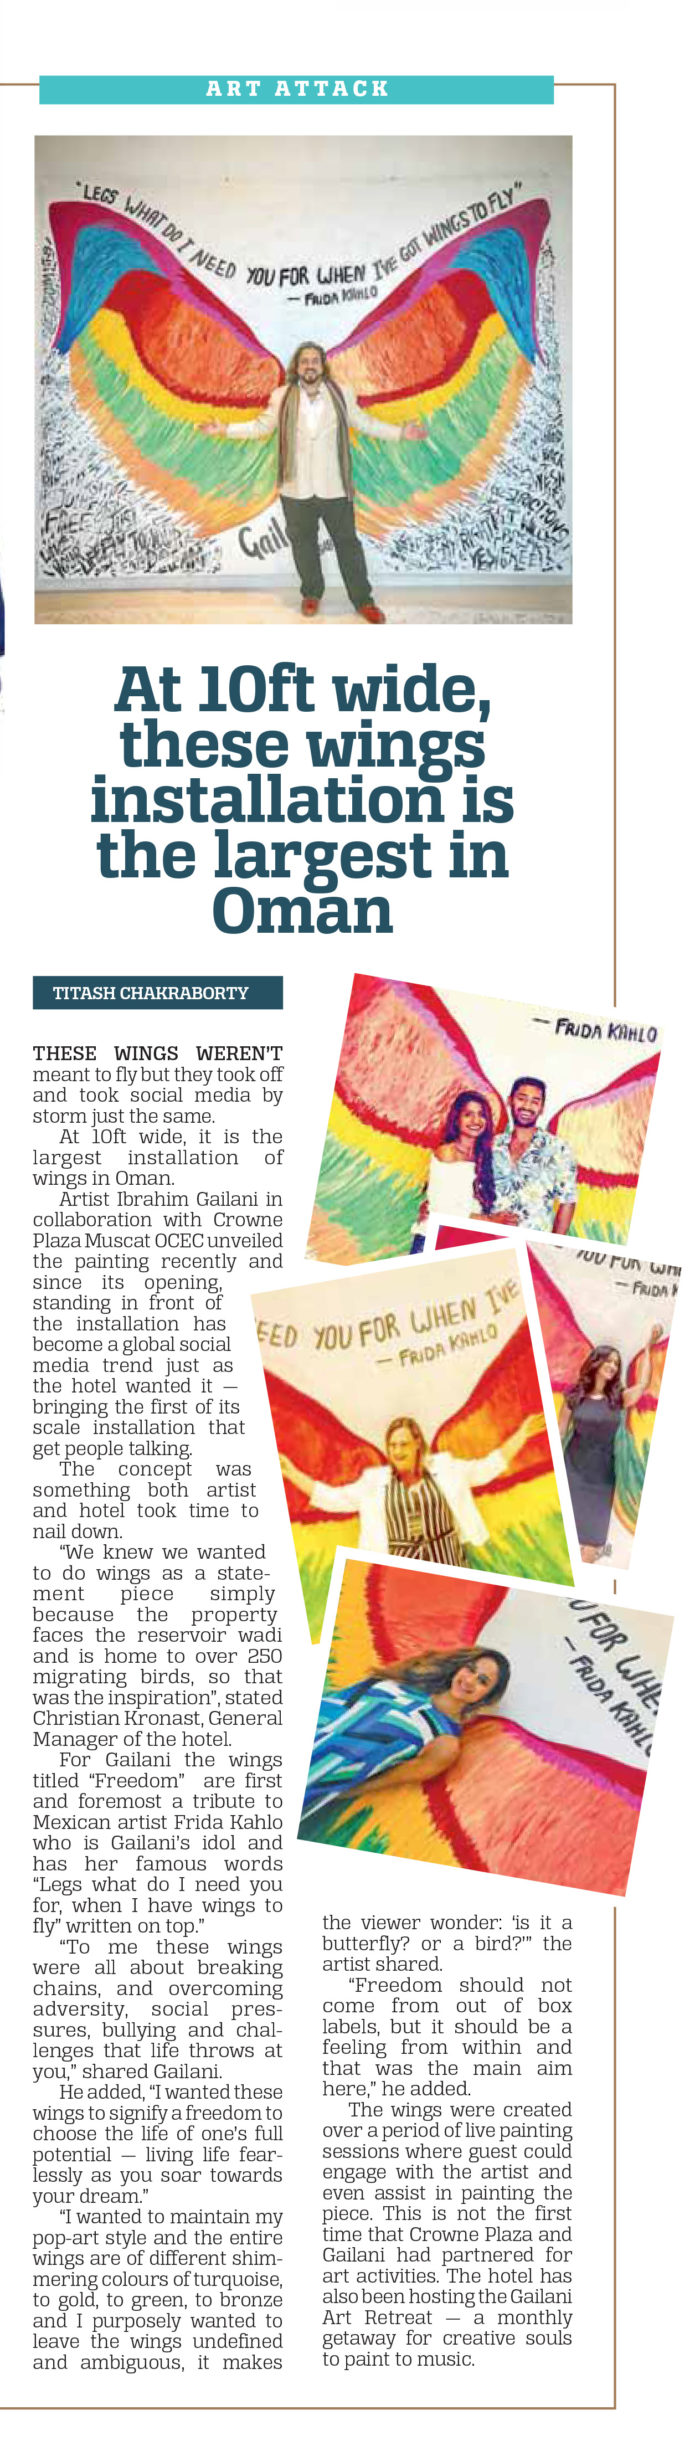 At 10ft wide, these wings installation is the largest in Oman